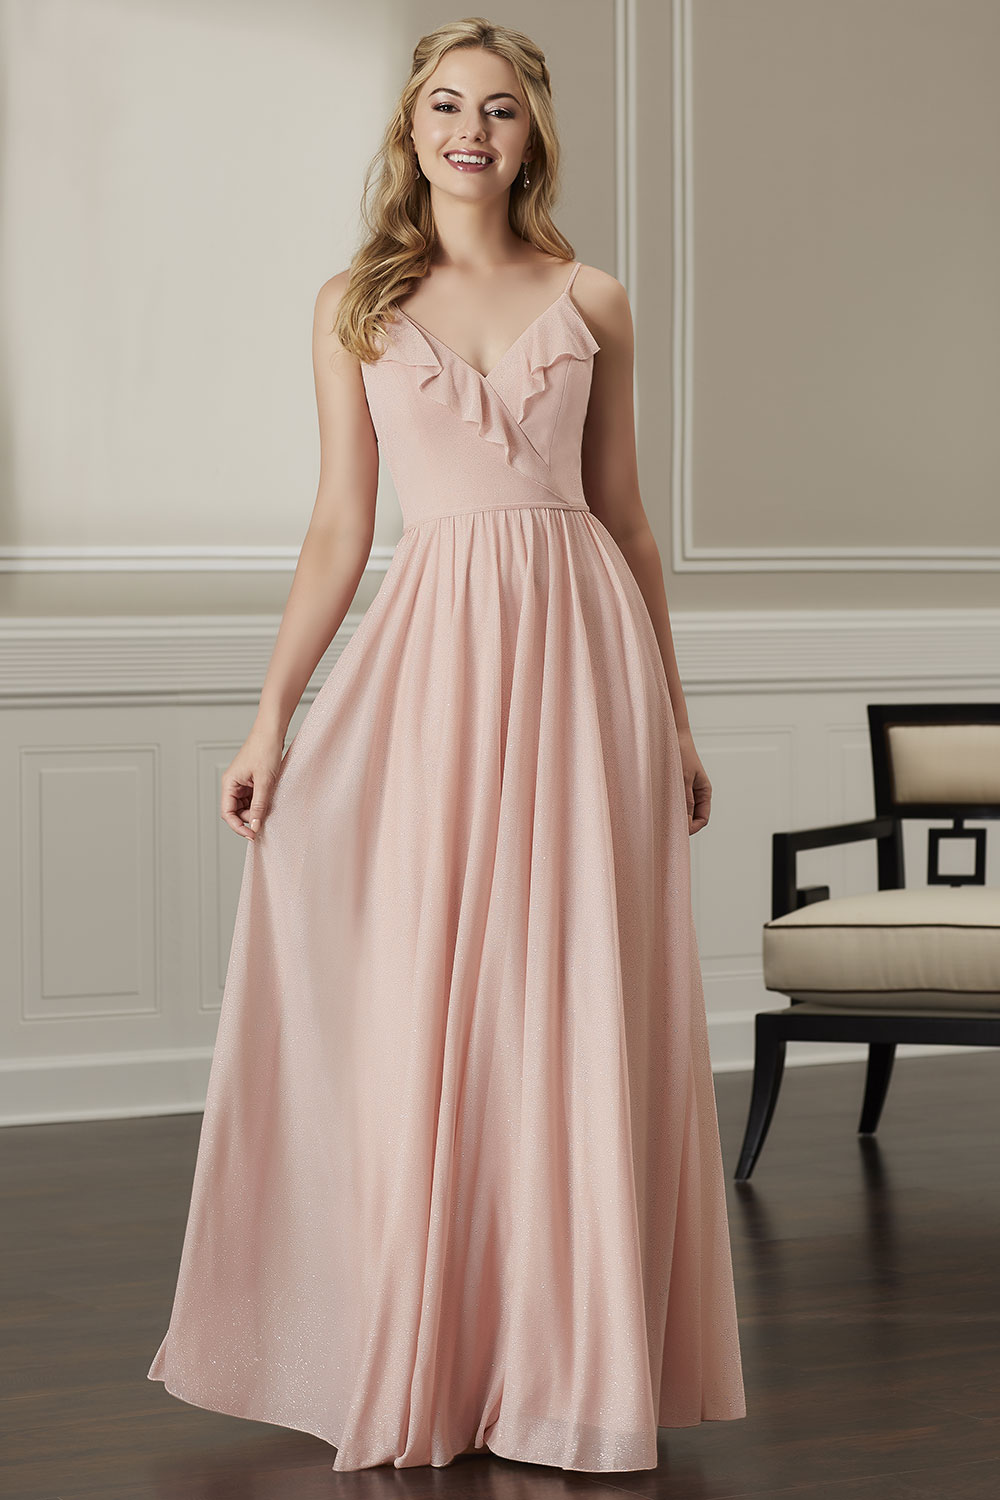 bridesmaid-dresses-jacquelin-bridals-canada-26830